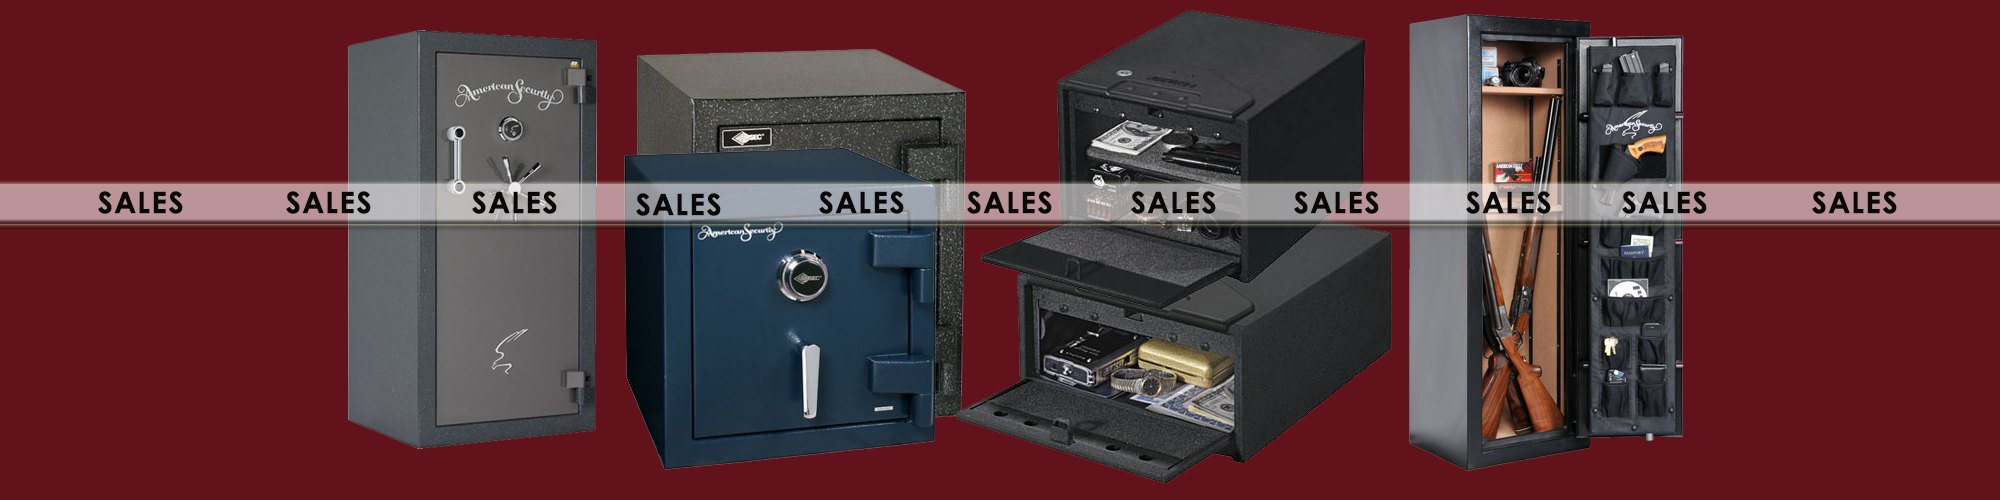 STOREWIDE SALES OF GUN SAFES